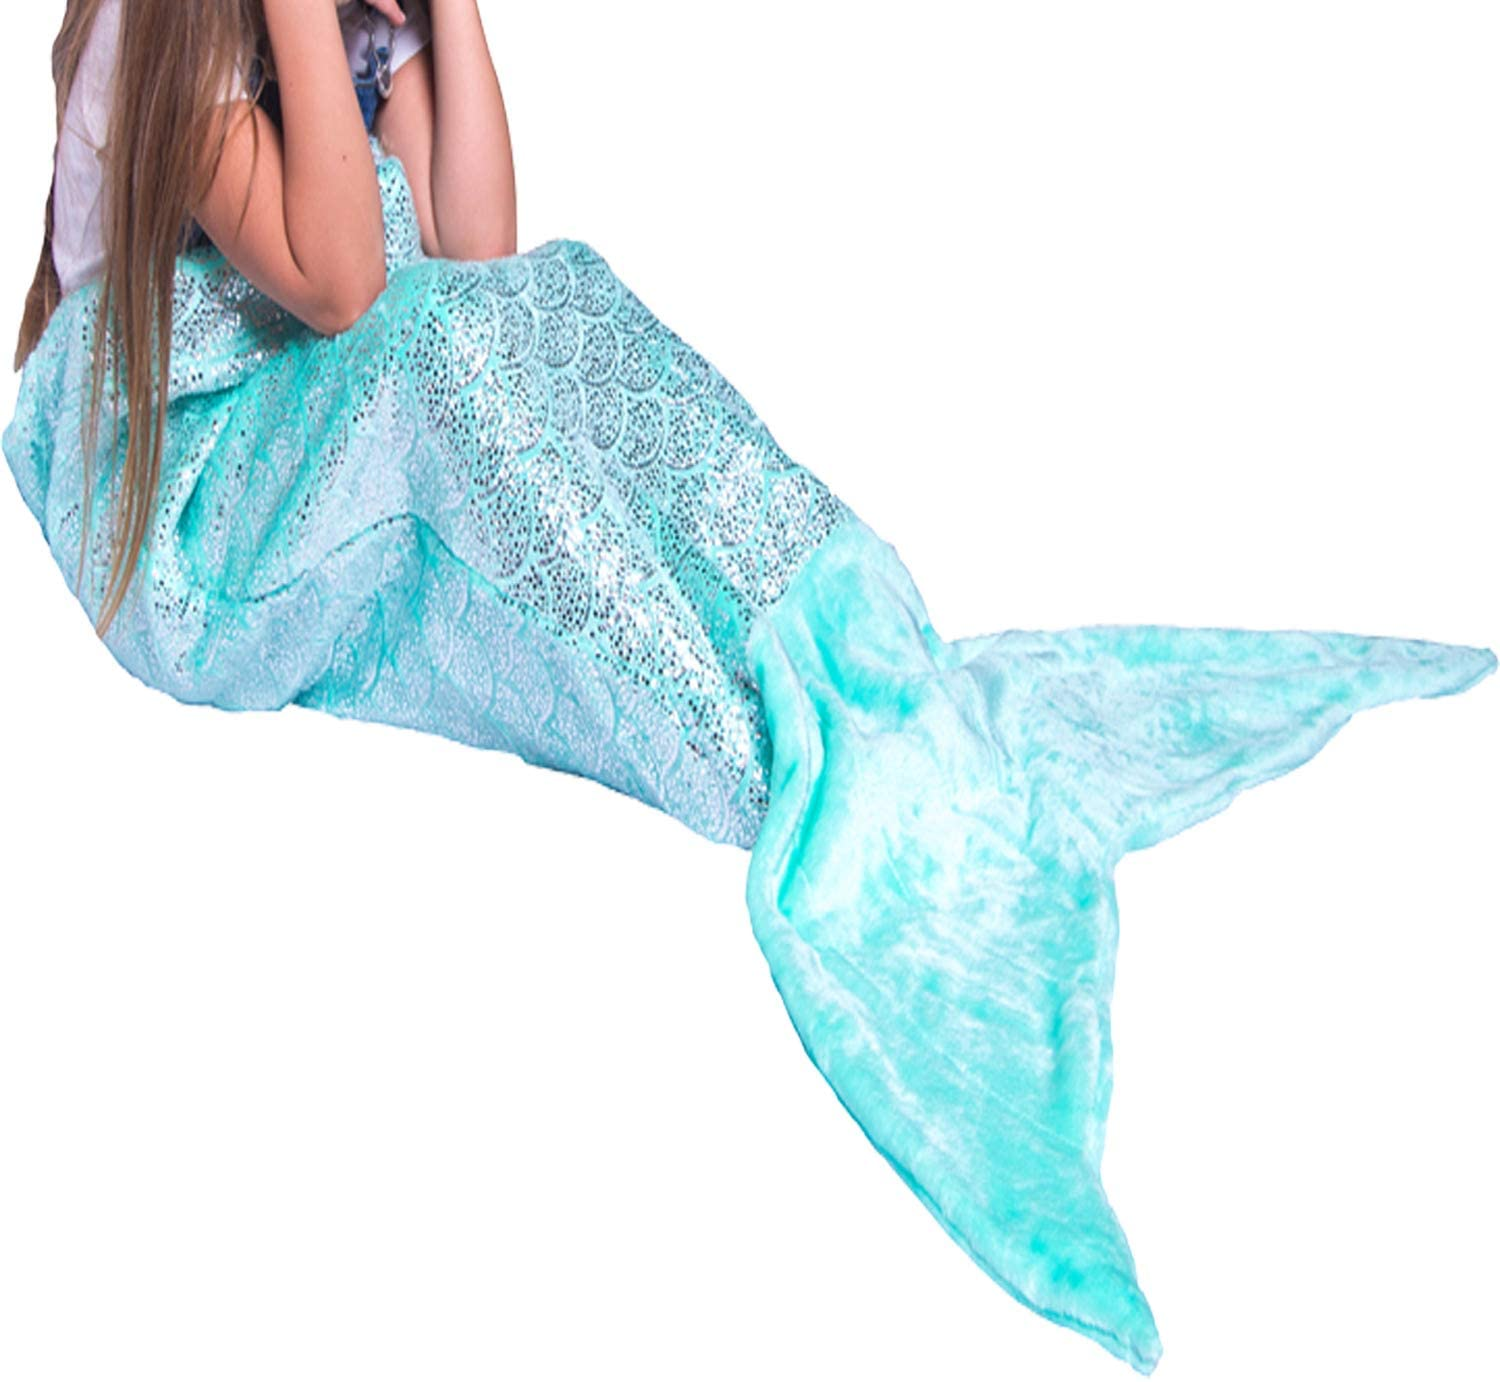 BLUE MERMAID Double Sided Super Soft Cuddle Fleece Fabric Material